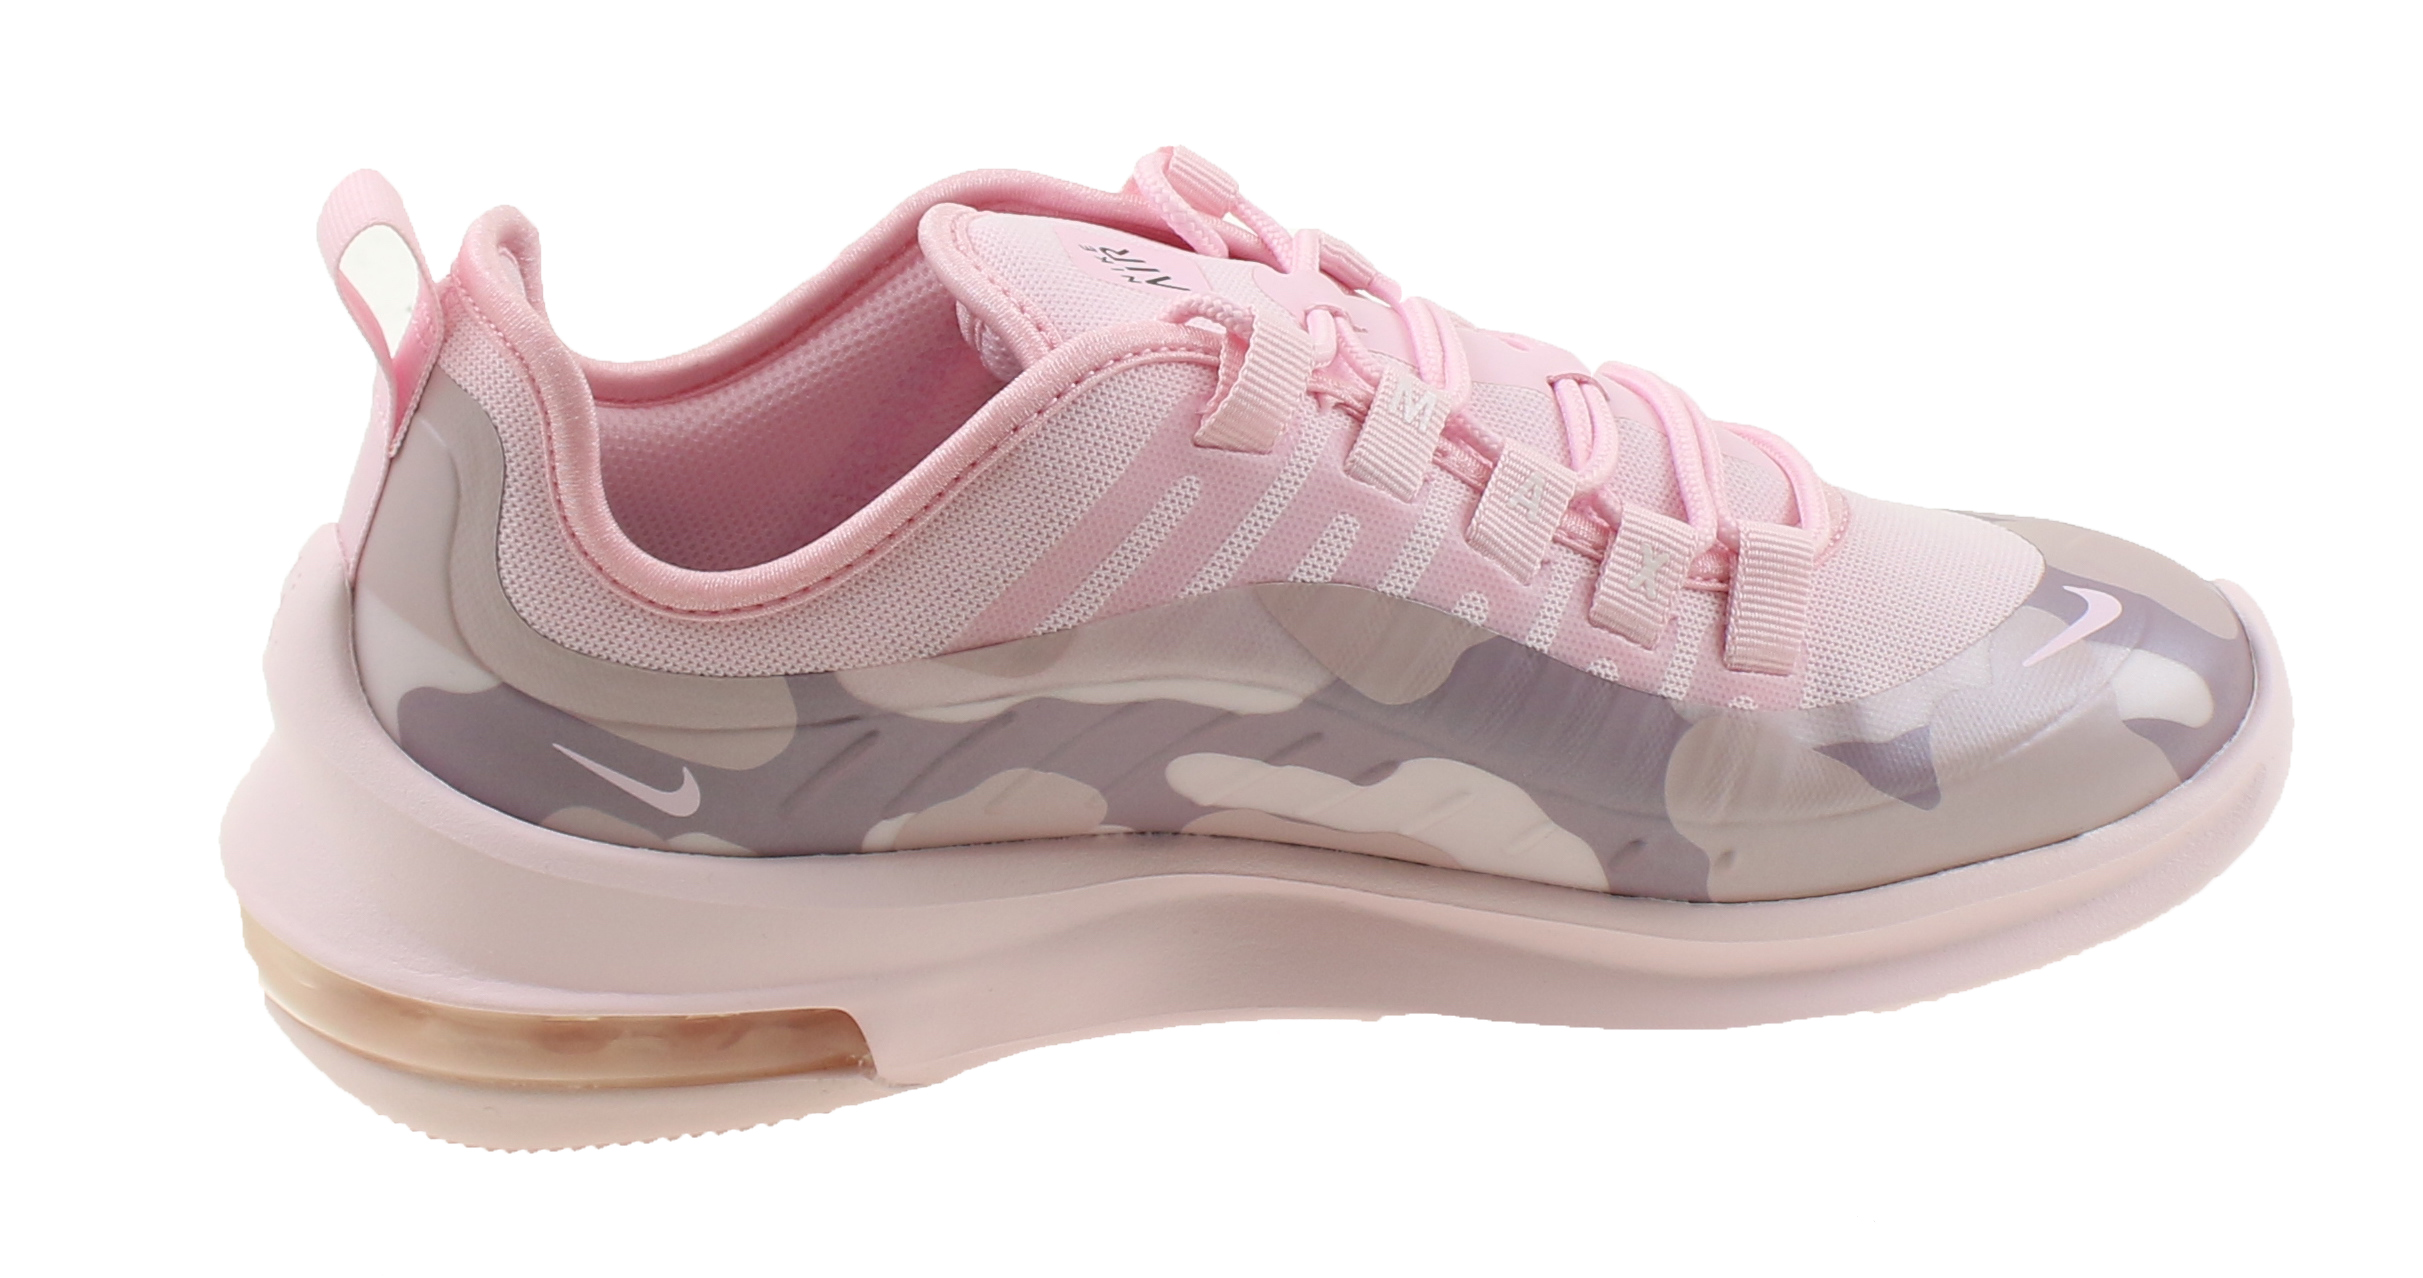 f5135b334a67cf Nike Air Max Axis Premium. BQ0126 600 PALE PINK PINK FOAM -BLACK. Product  afbeelding Product afbeelding ...